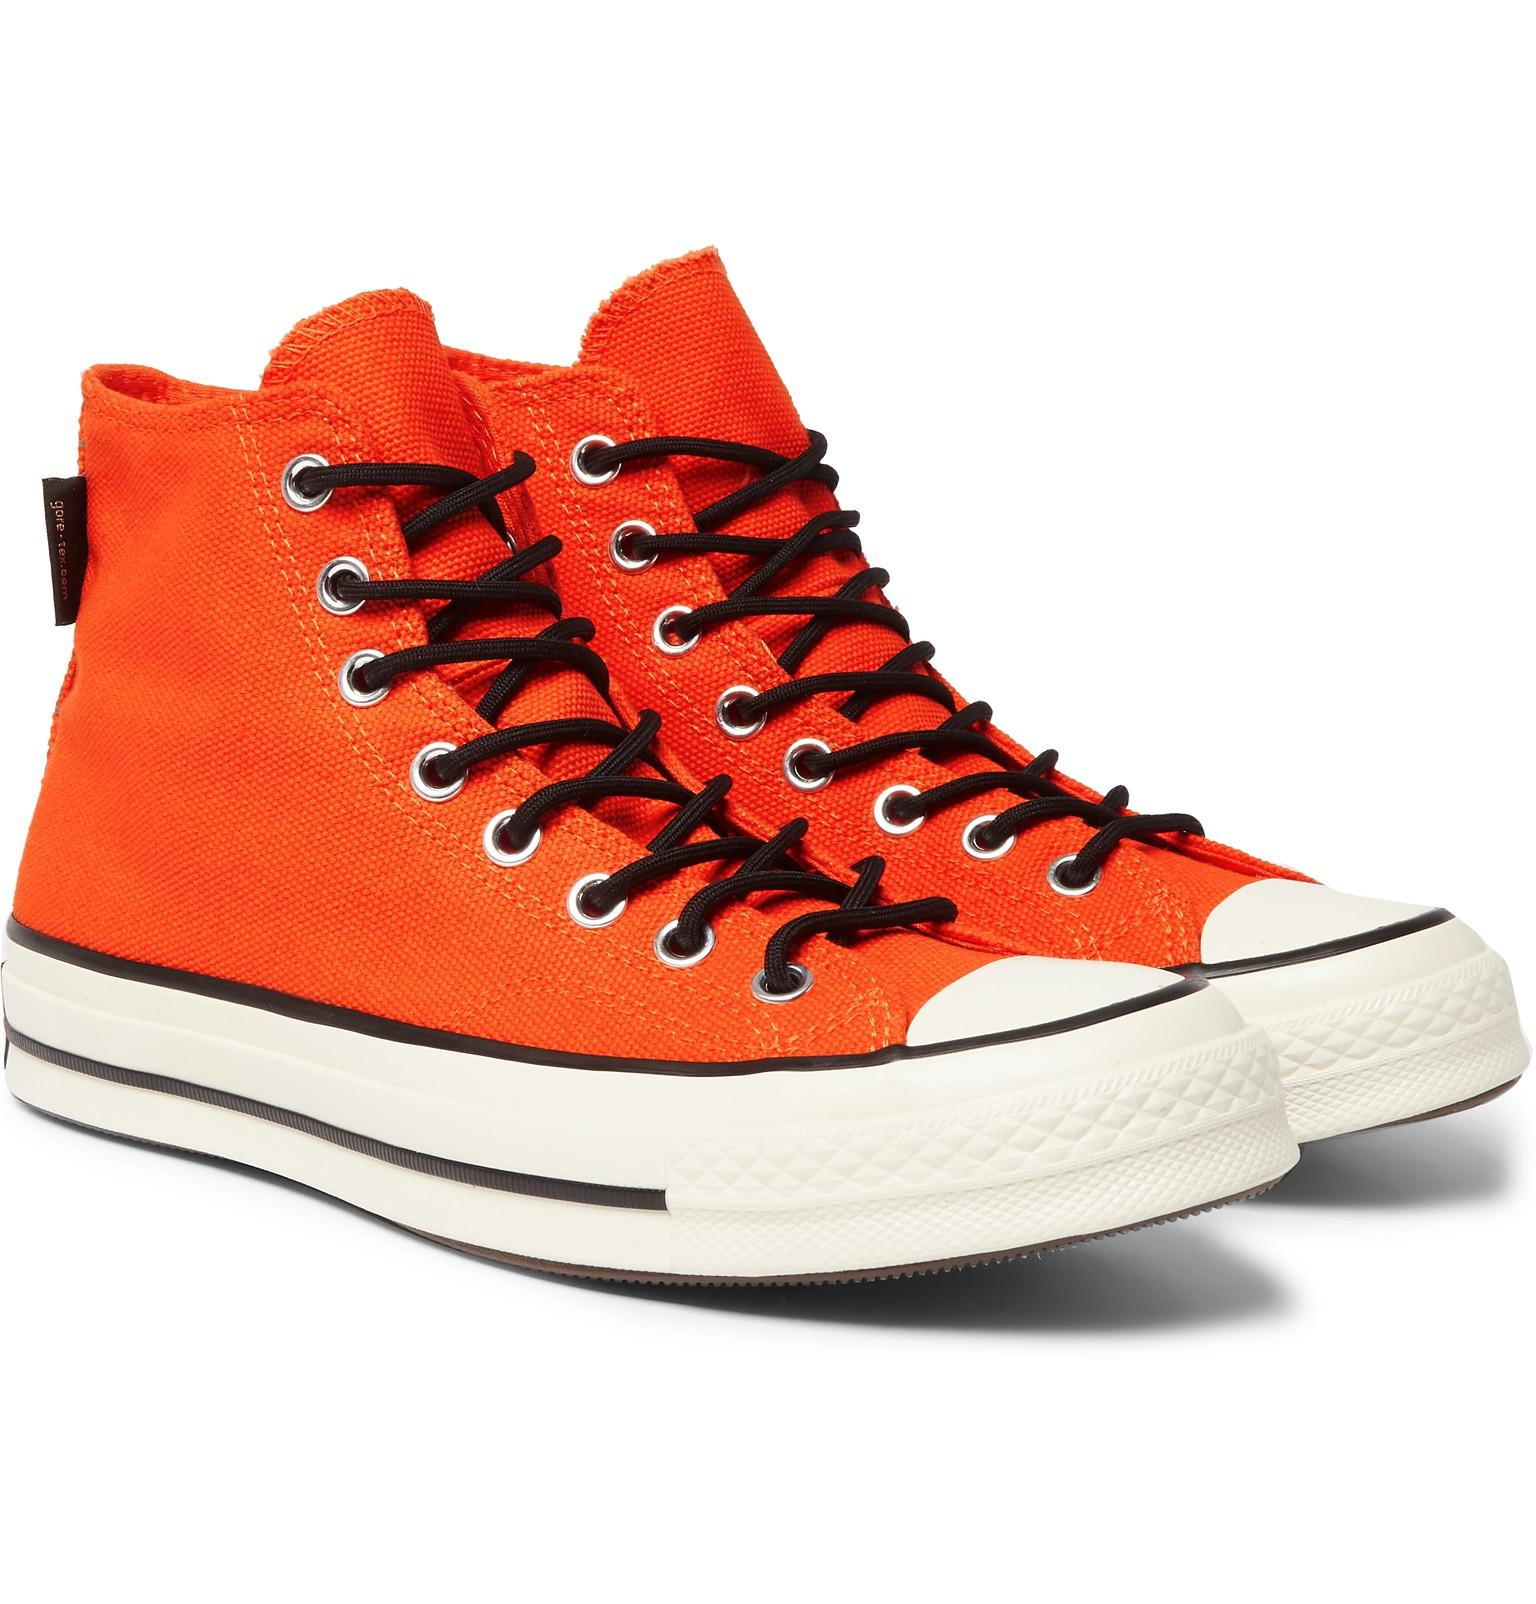 e304f40963c Converse 1970s Chuck Taylor All Star Canvas High-top Sneakers in ...